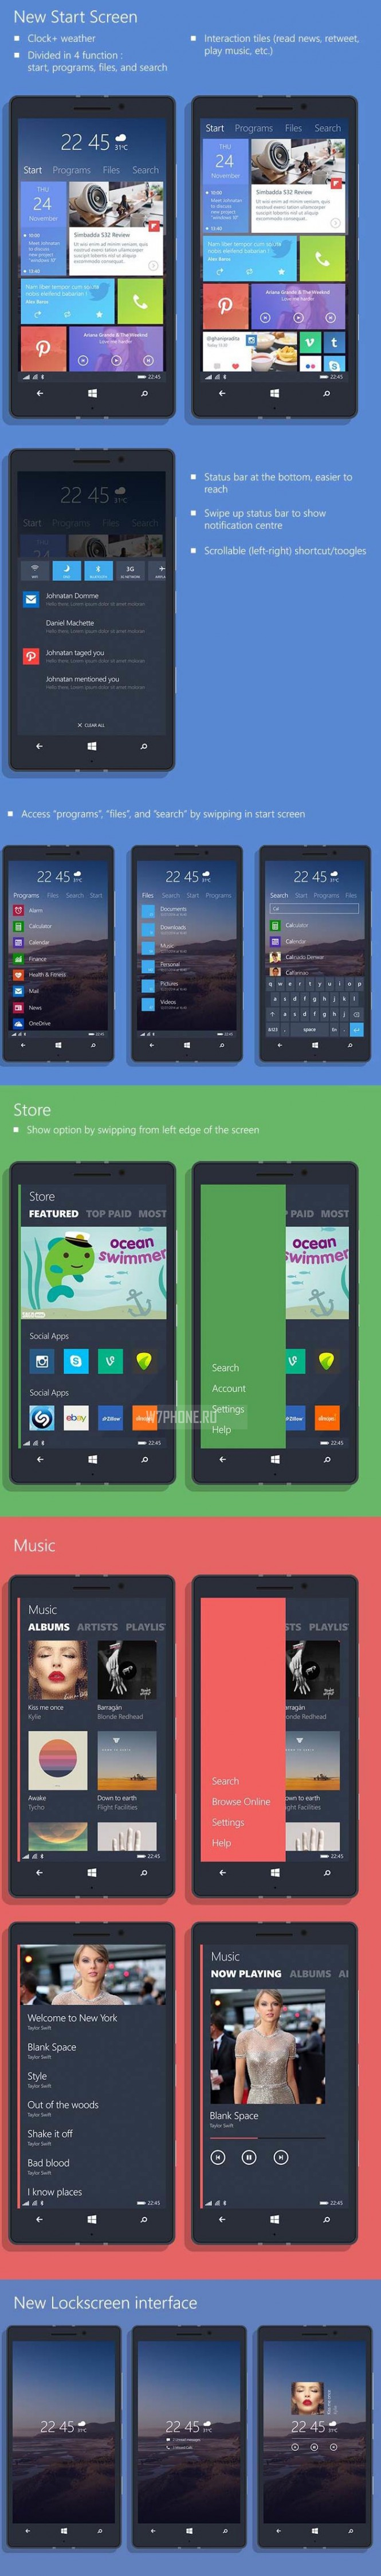 windows_phone_10_concept_2